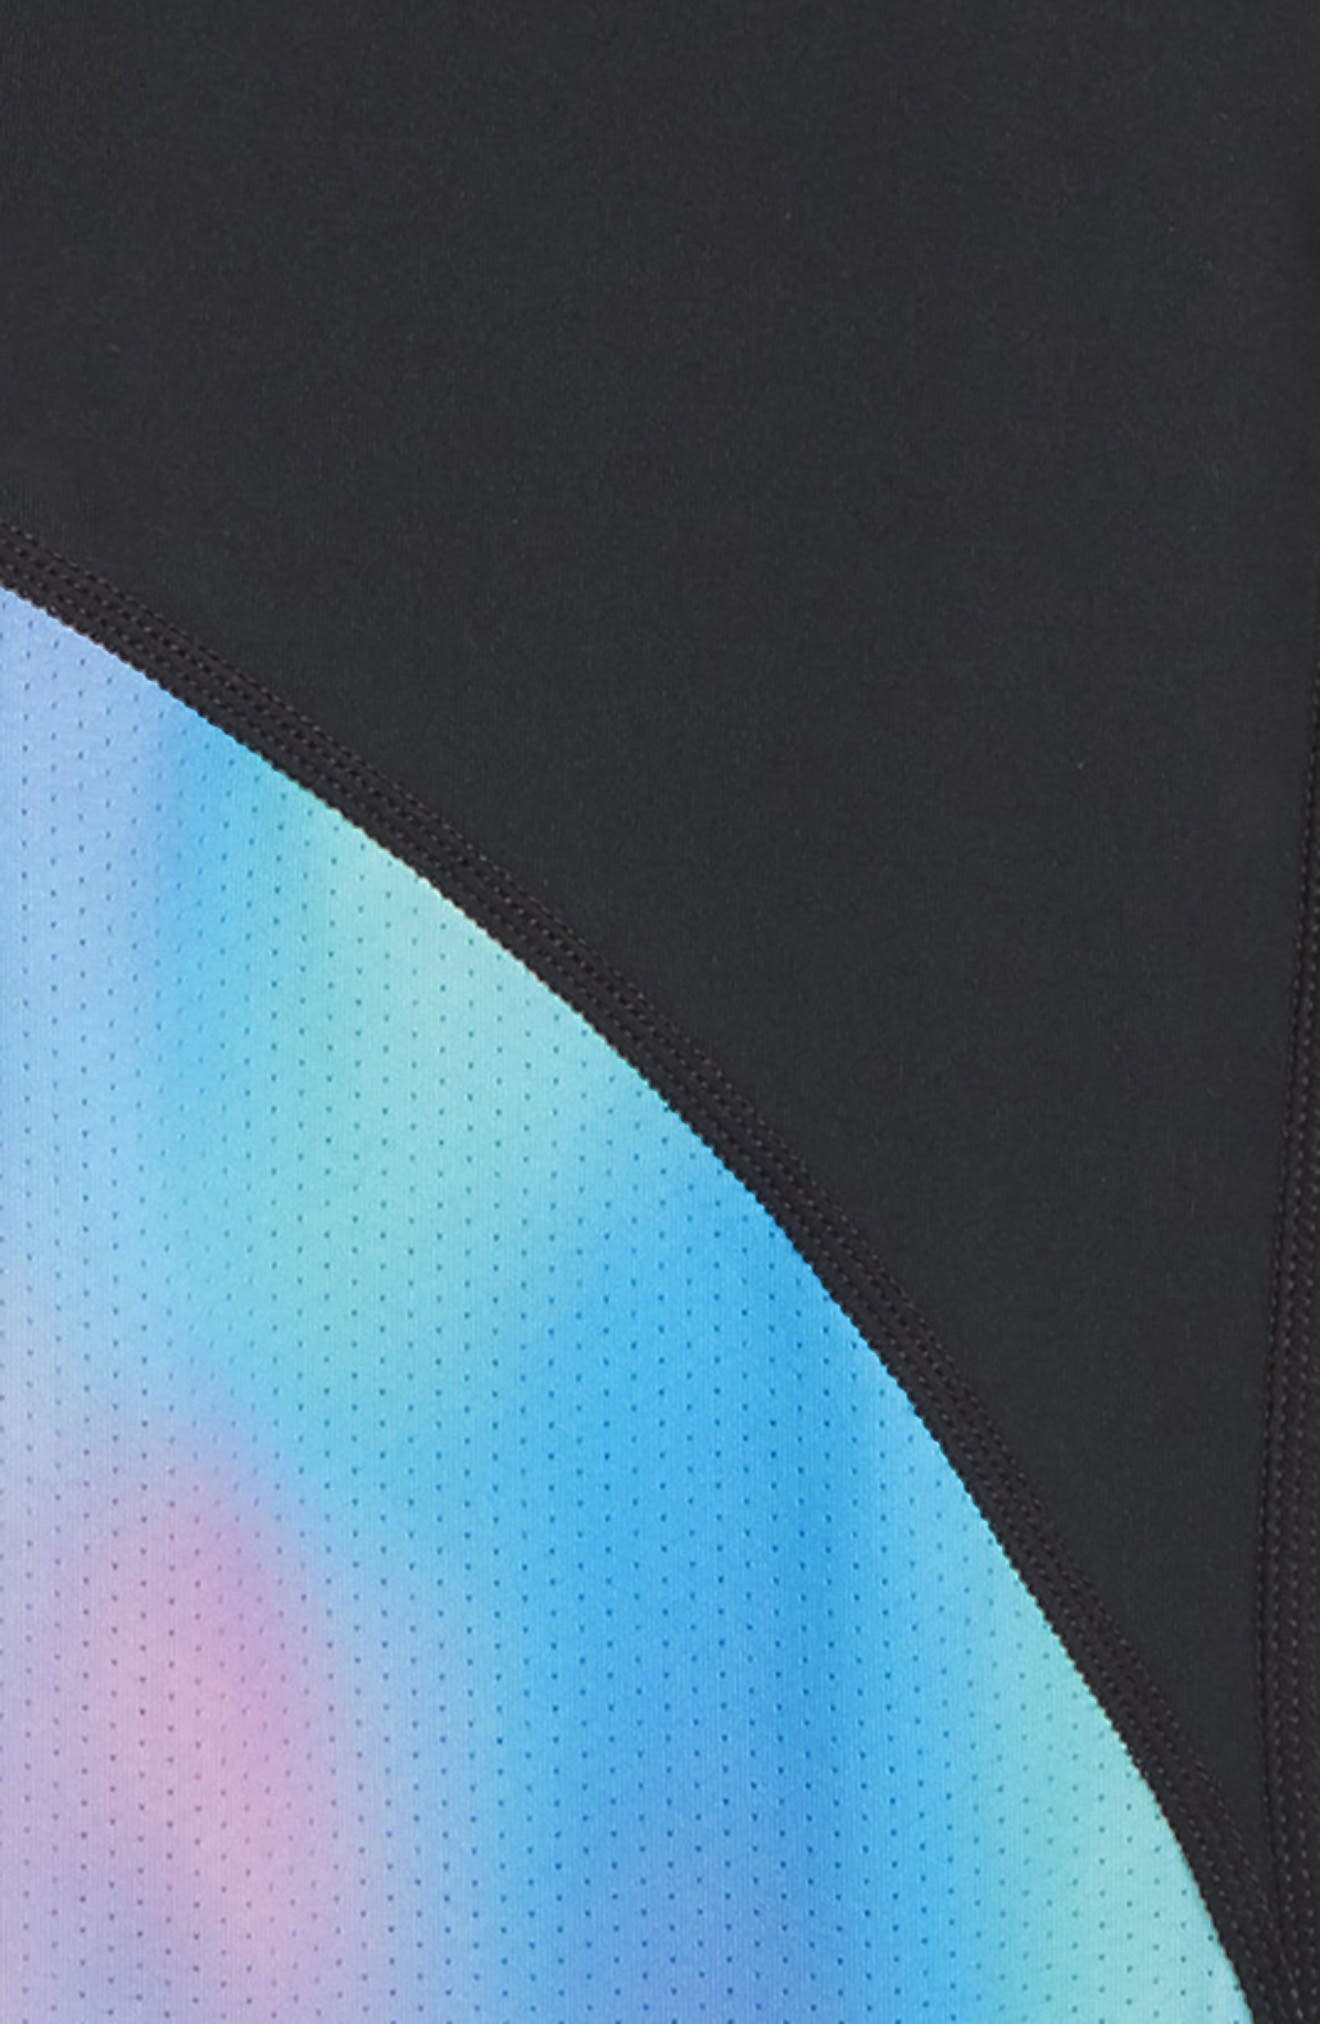 Pro Print Training Tights,                             Alternate thumbnail 3, color,                             BLK/ HYPER JD/ BLK/ LT AQUA